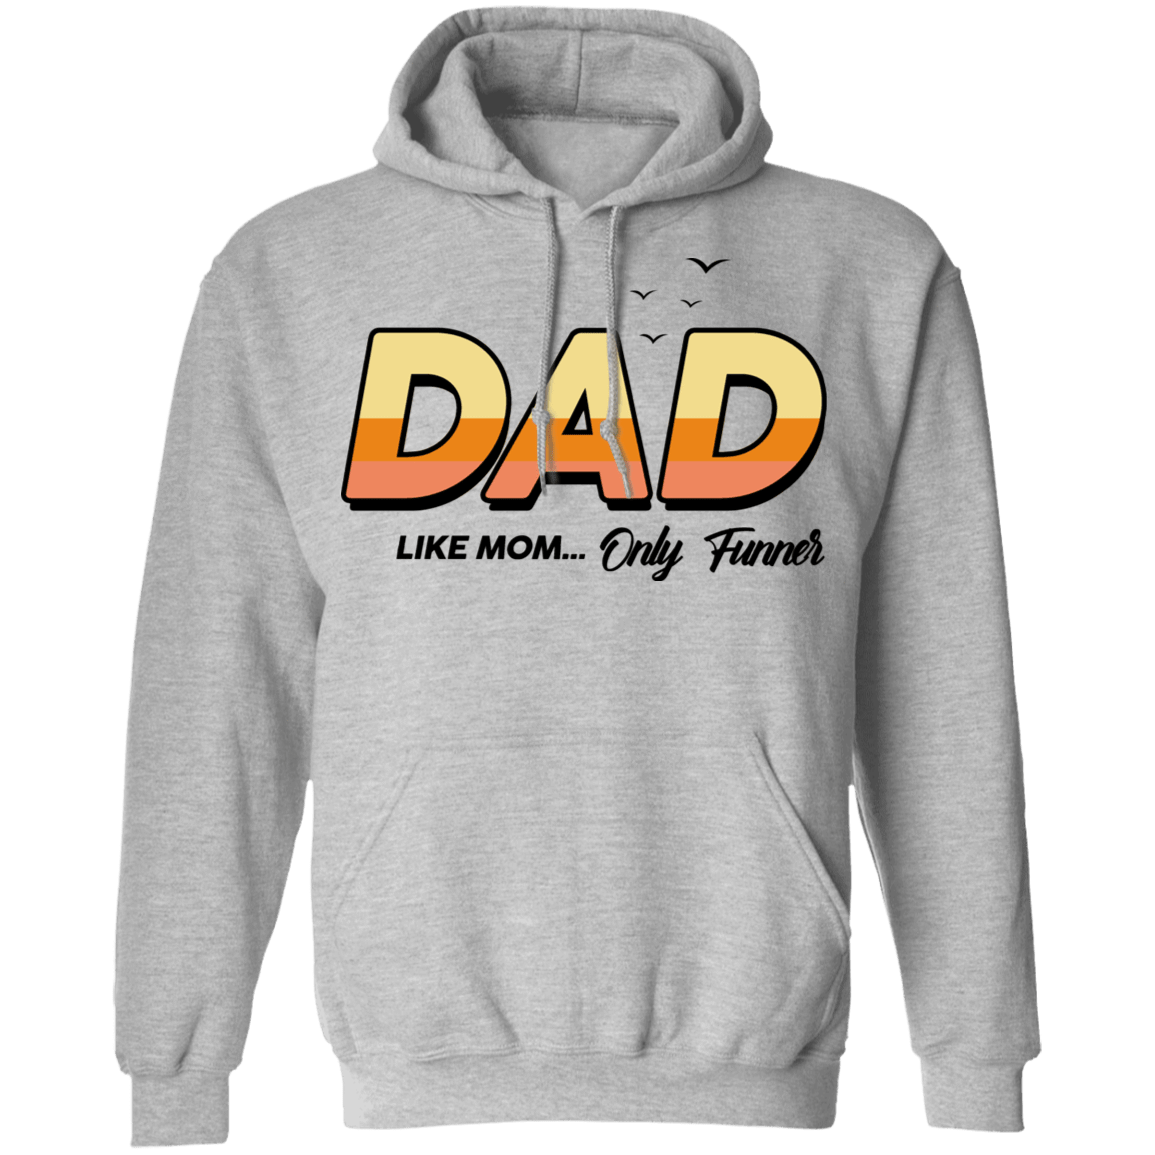 Dad Like Mom ... Only Funner T-Shirts, Hoodies, Tank 541-4741-79999097-23111 - Tee Ript